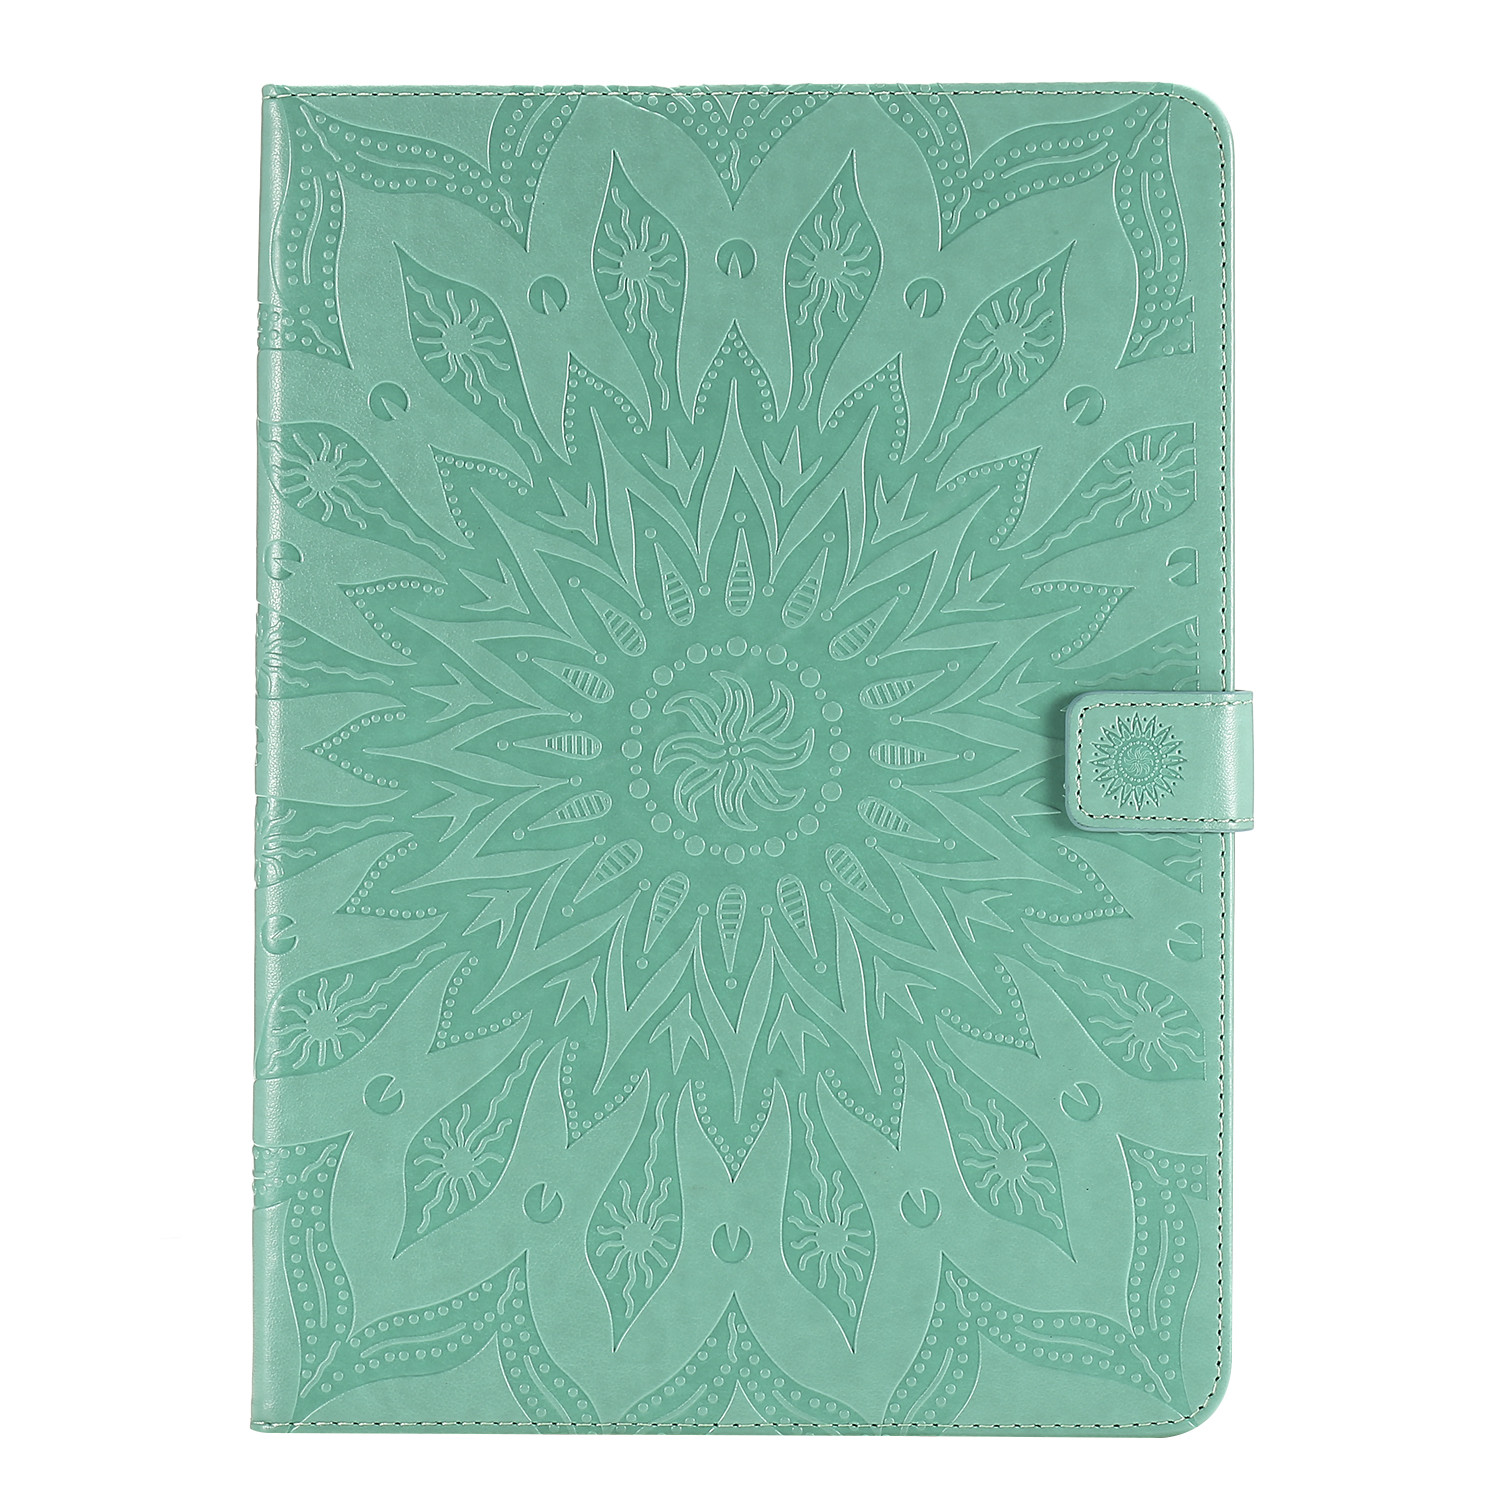 4 Black Flower 3D Embossed Cover for iPad Pro 12 9 Case 2020 Leather Protective Shell Skin for